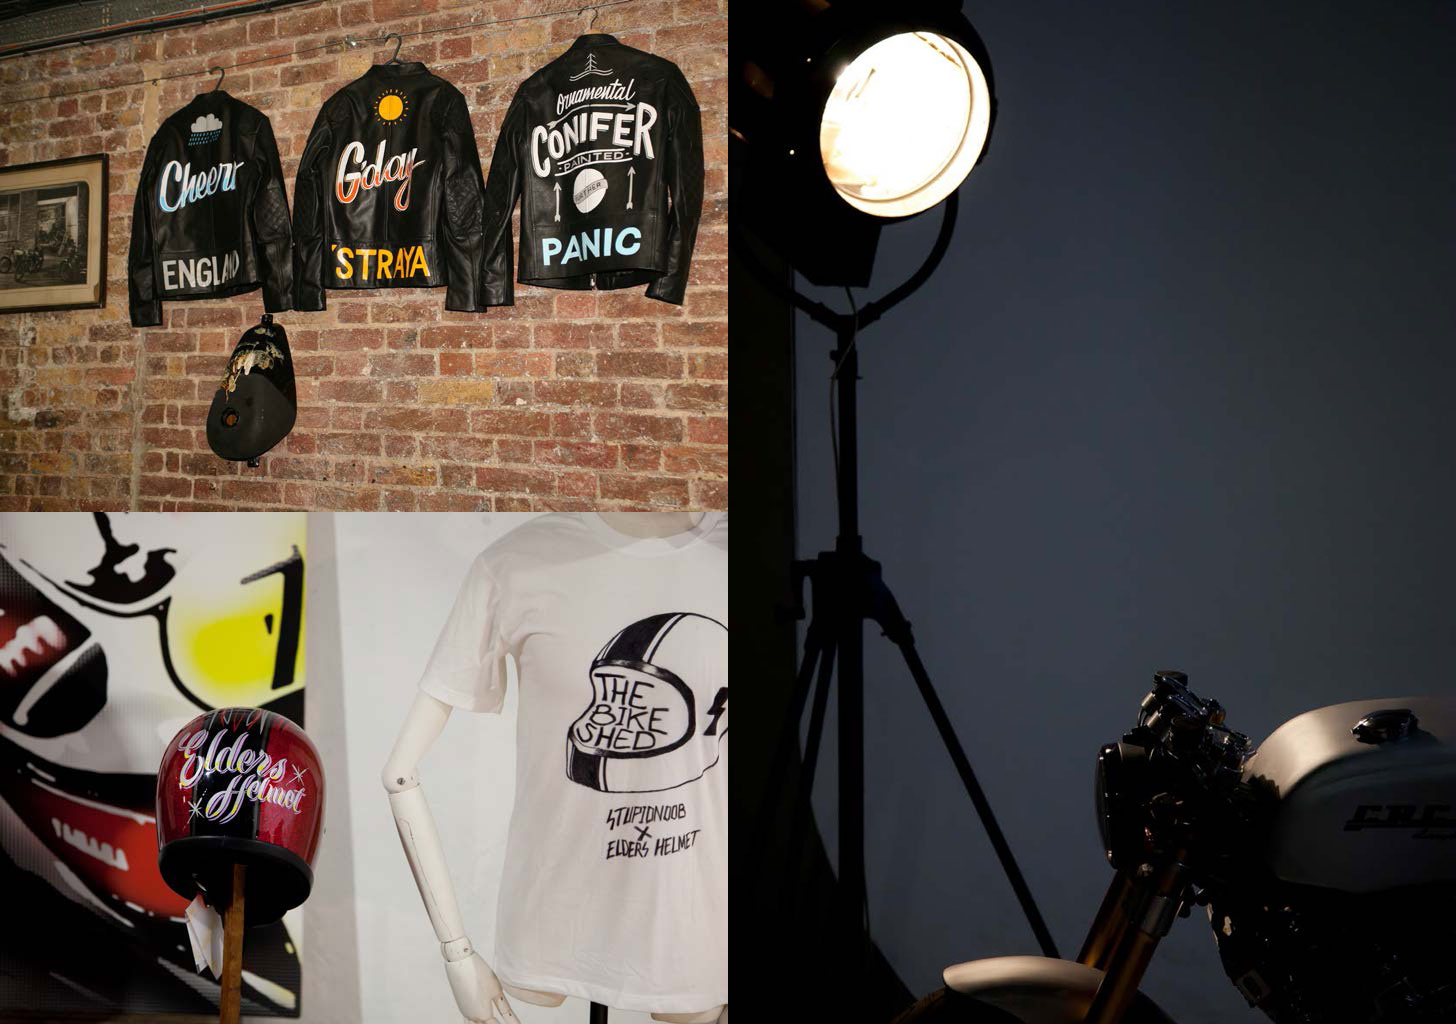 Three pictures, some leather jackets on a wall, a bike shed T shirt, and a spotlight on a cafe racer custom.